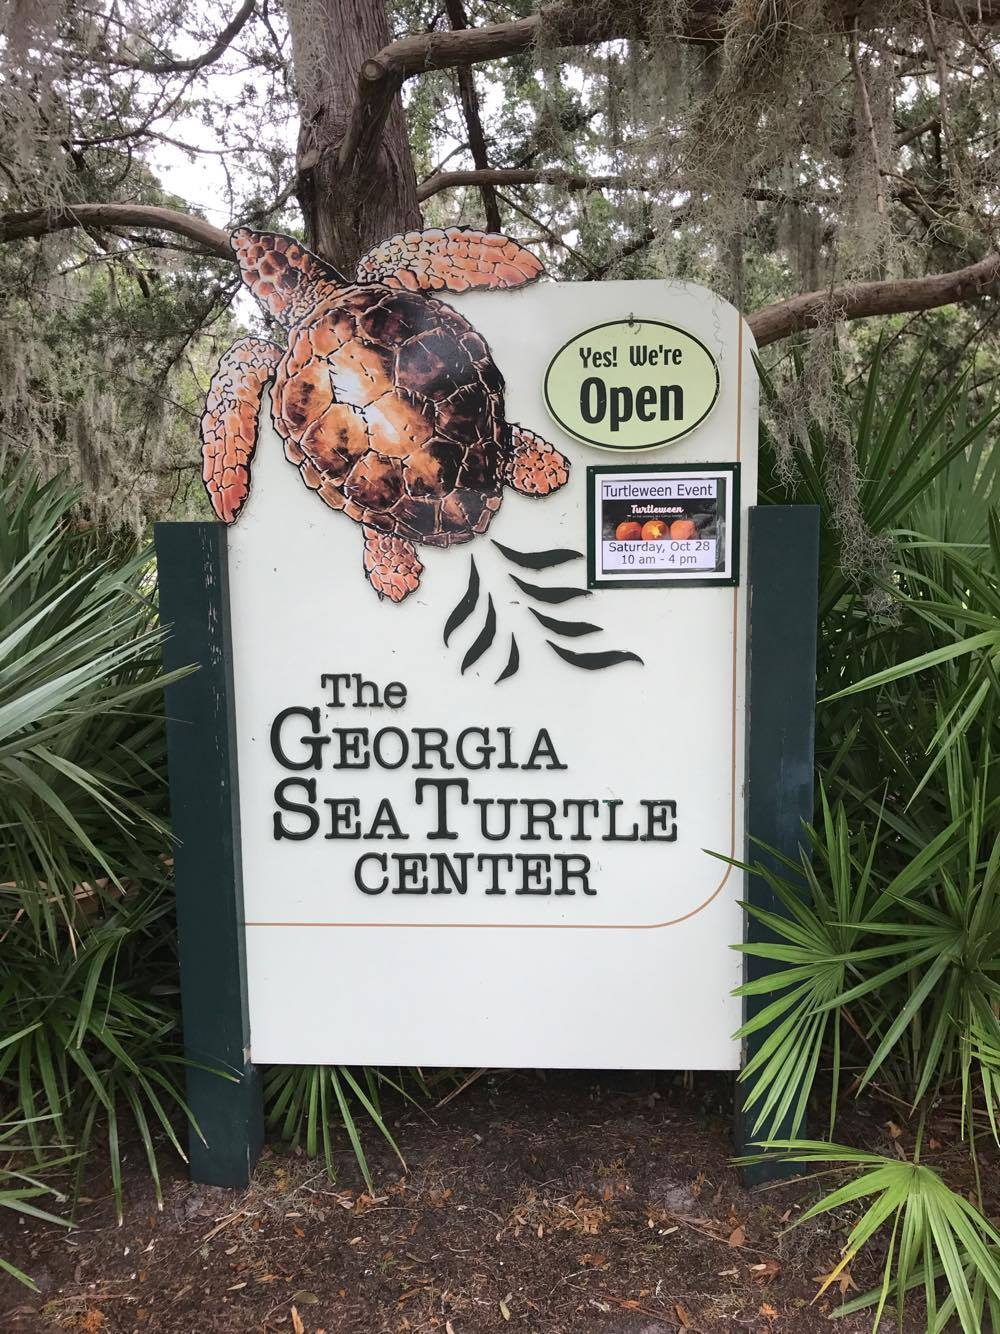 The Georgia Sea Turtle Center